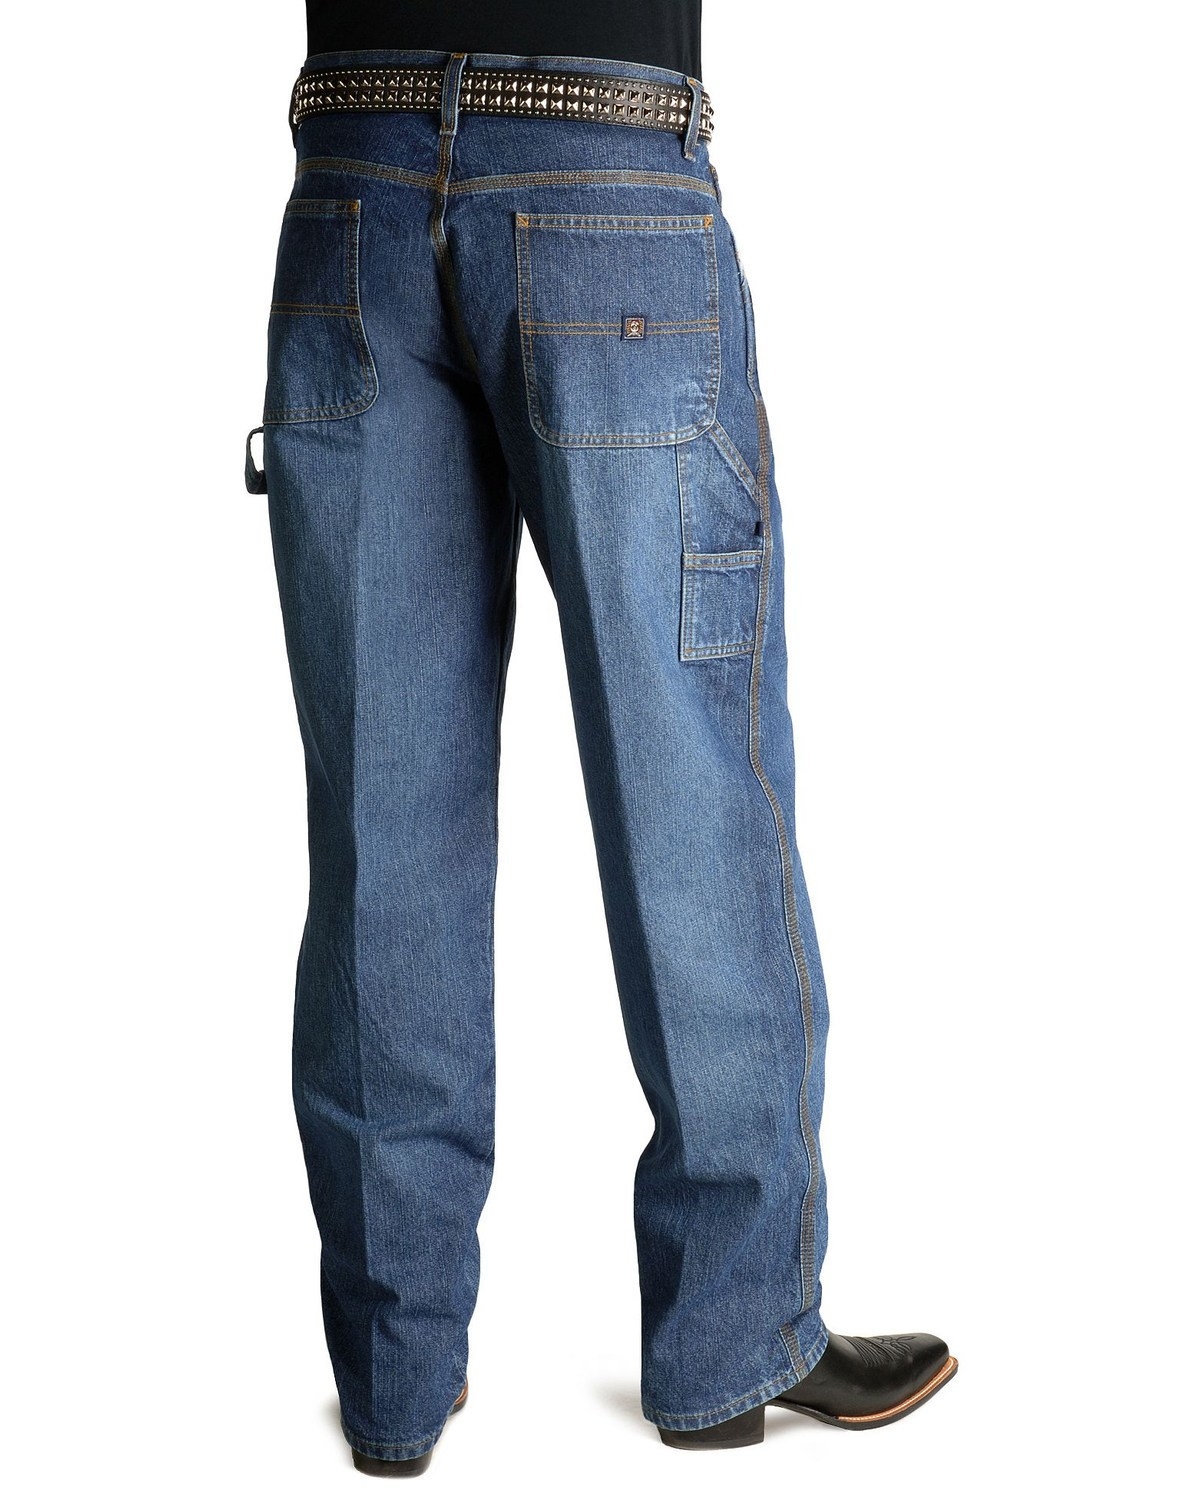 Cinch Men's Blue Label Carpenter Jeans | Boot Barn